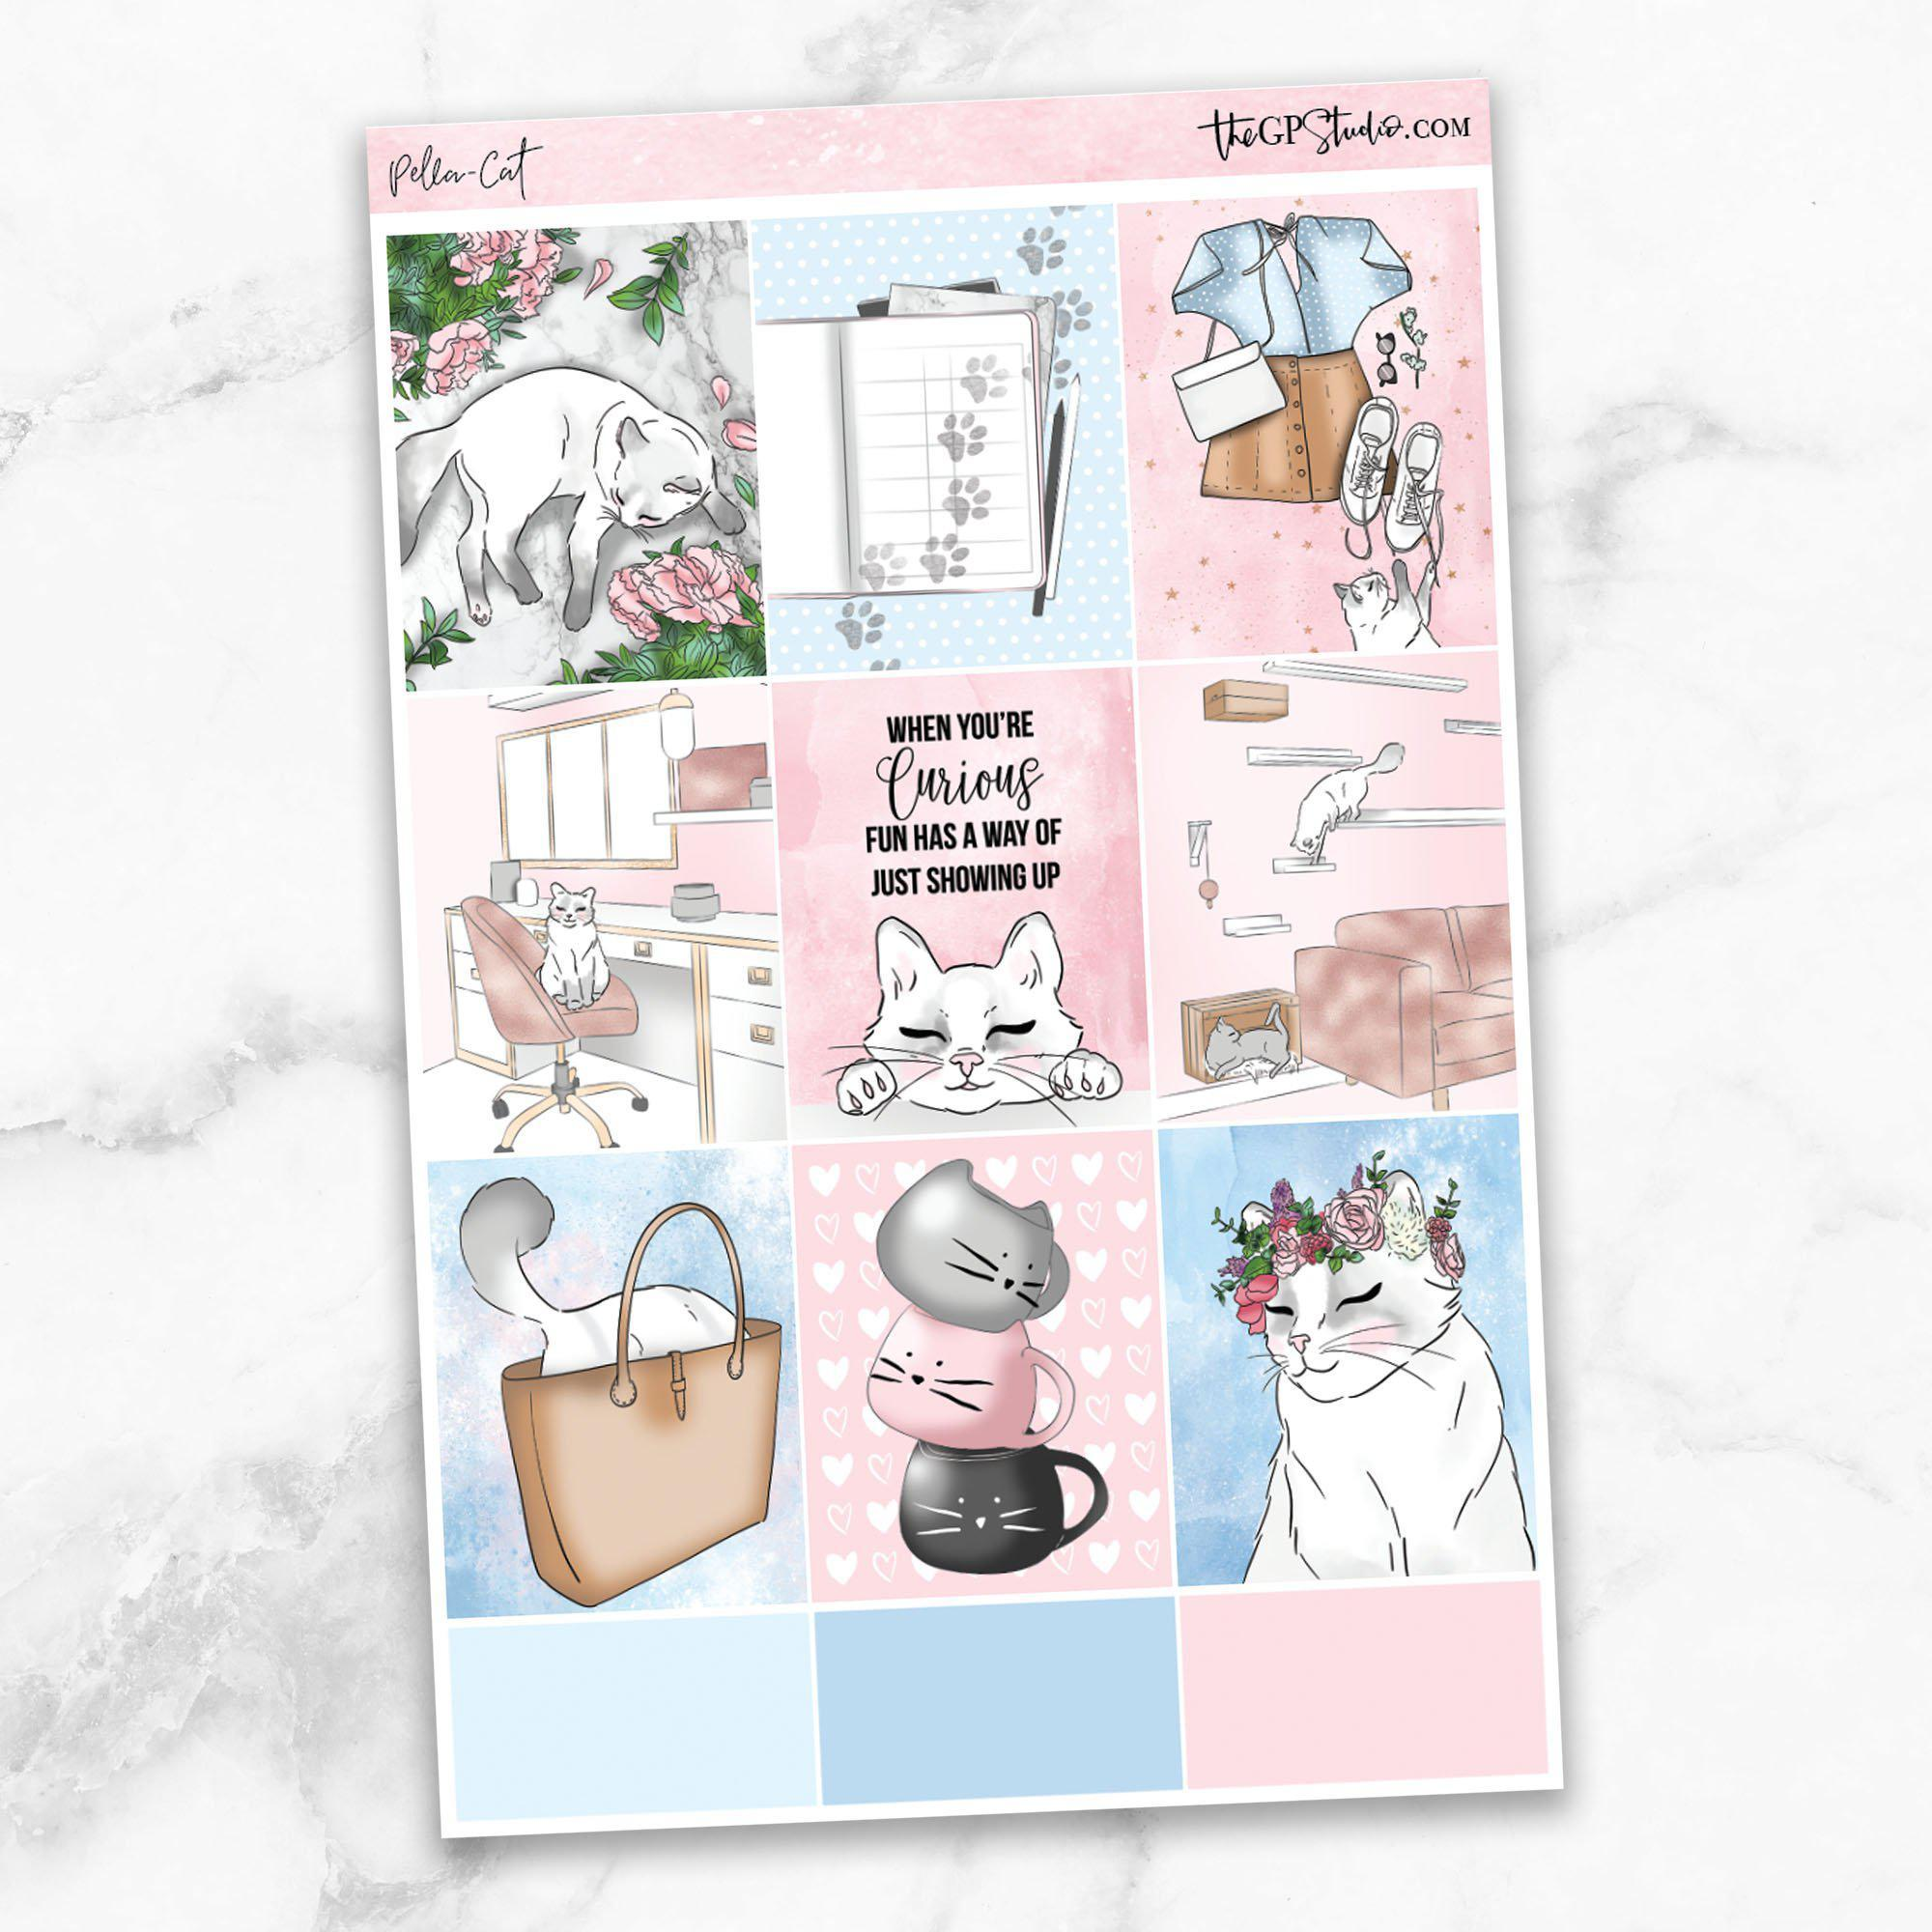 PELLA CAT KIT Full Boxes Planner Stickers-The GP Studio